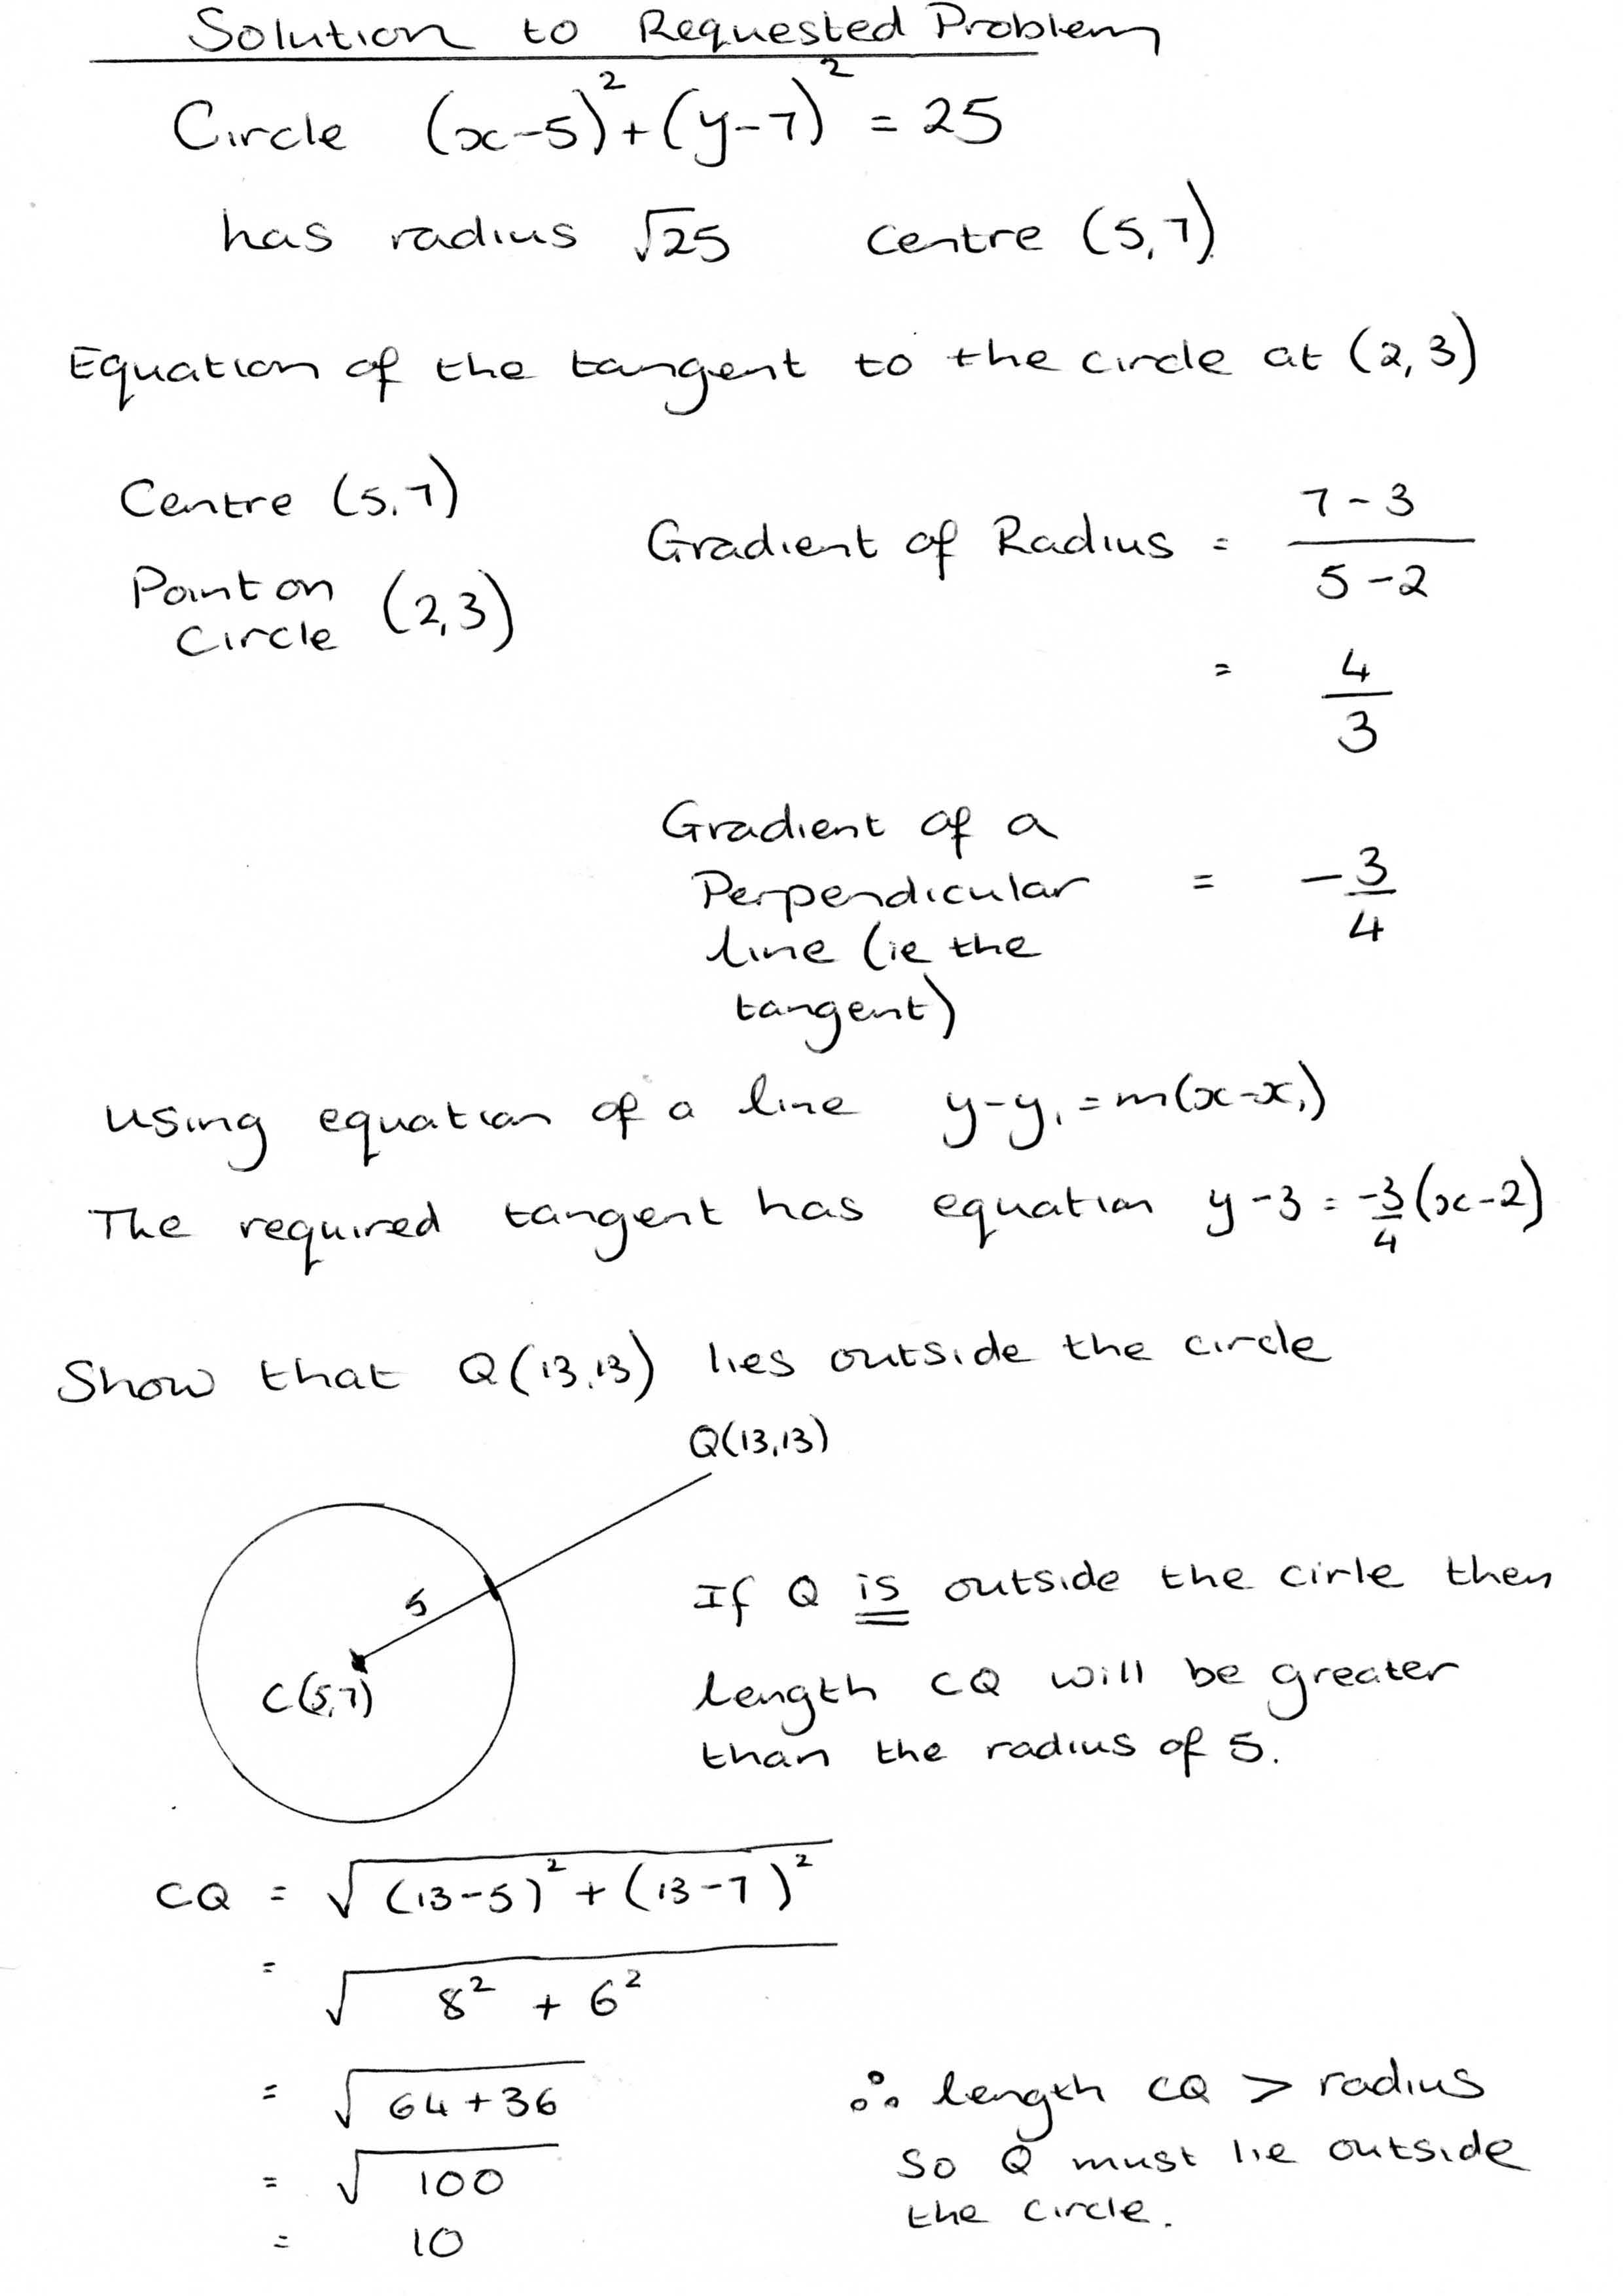 further maths wjec c coordinate geometry of the circle worked solution to wjec c2 past paper question